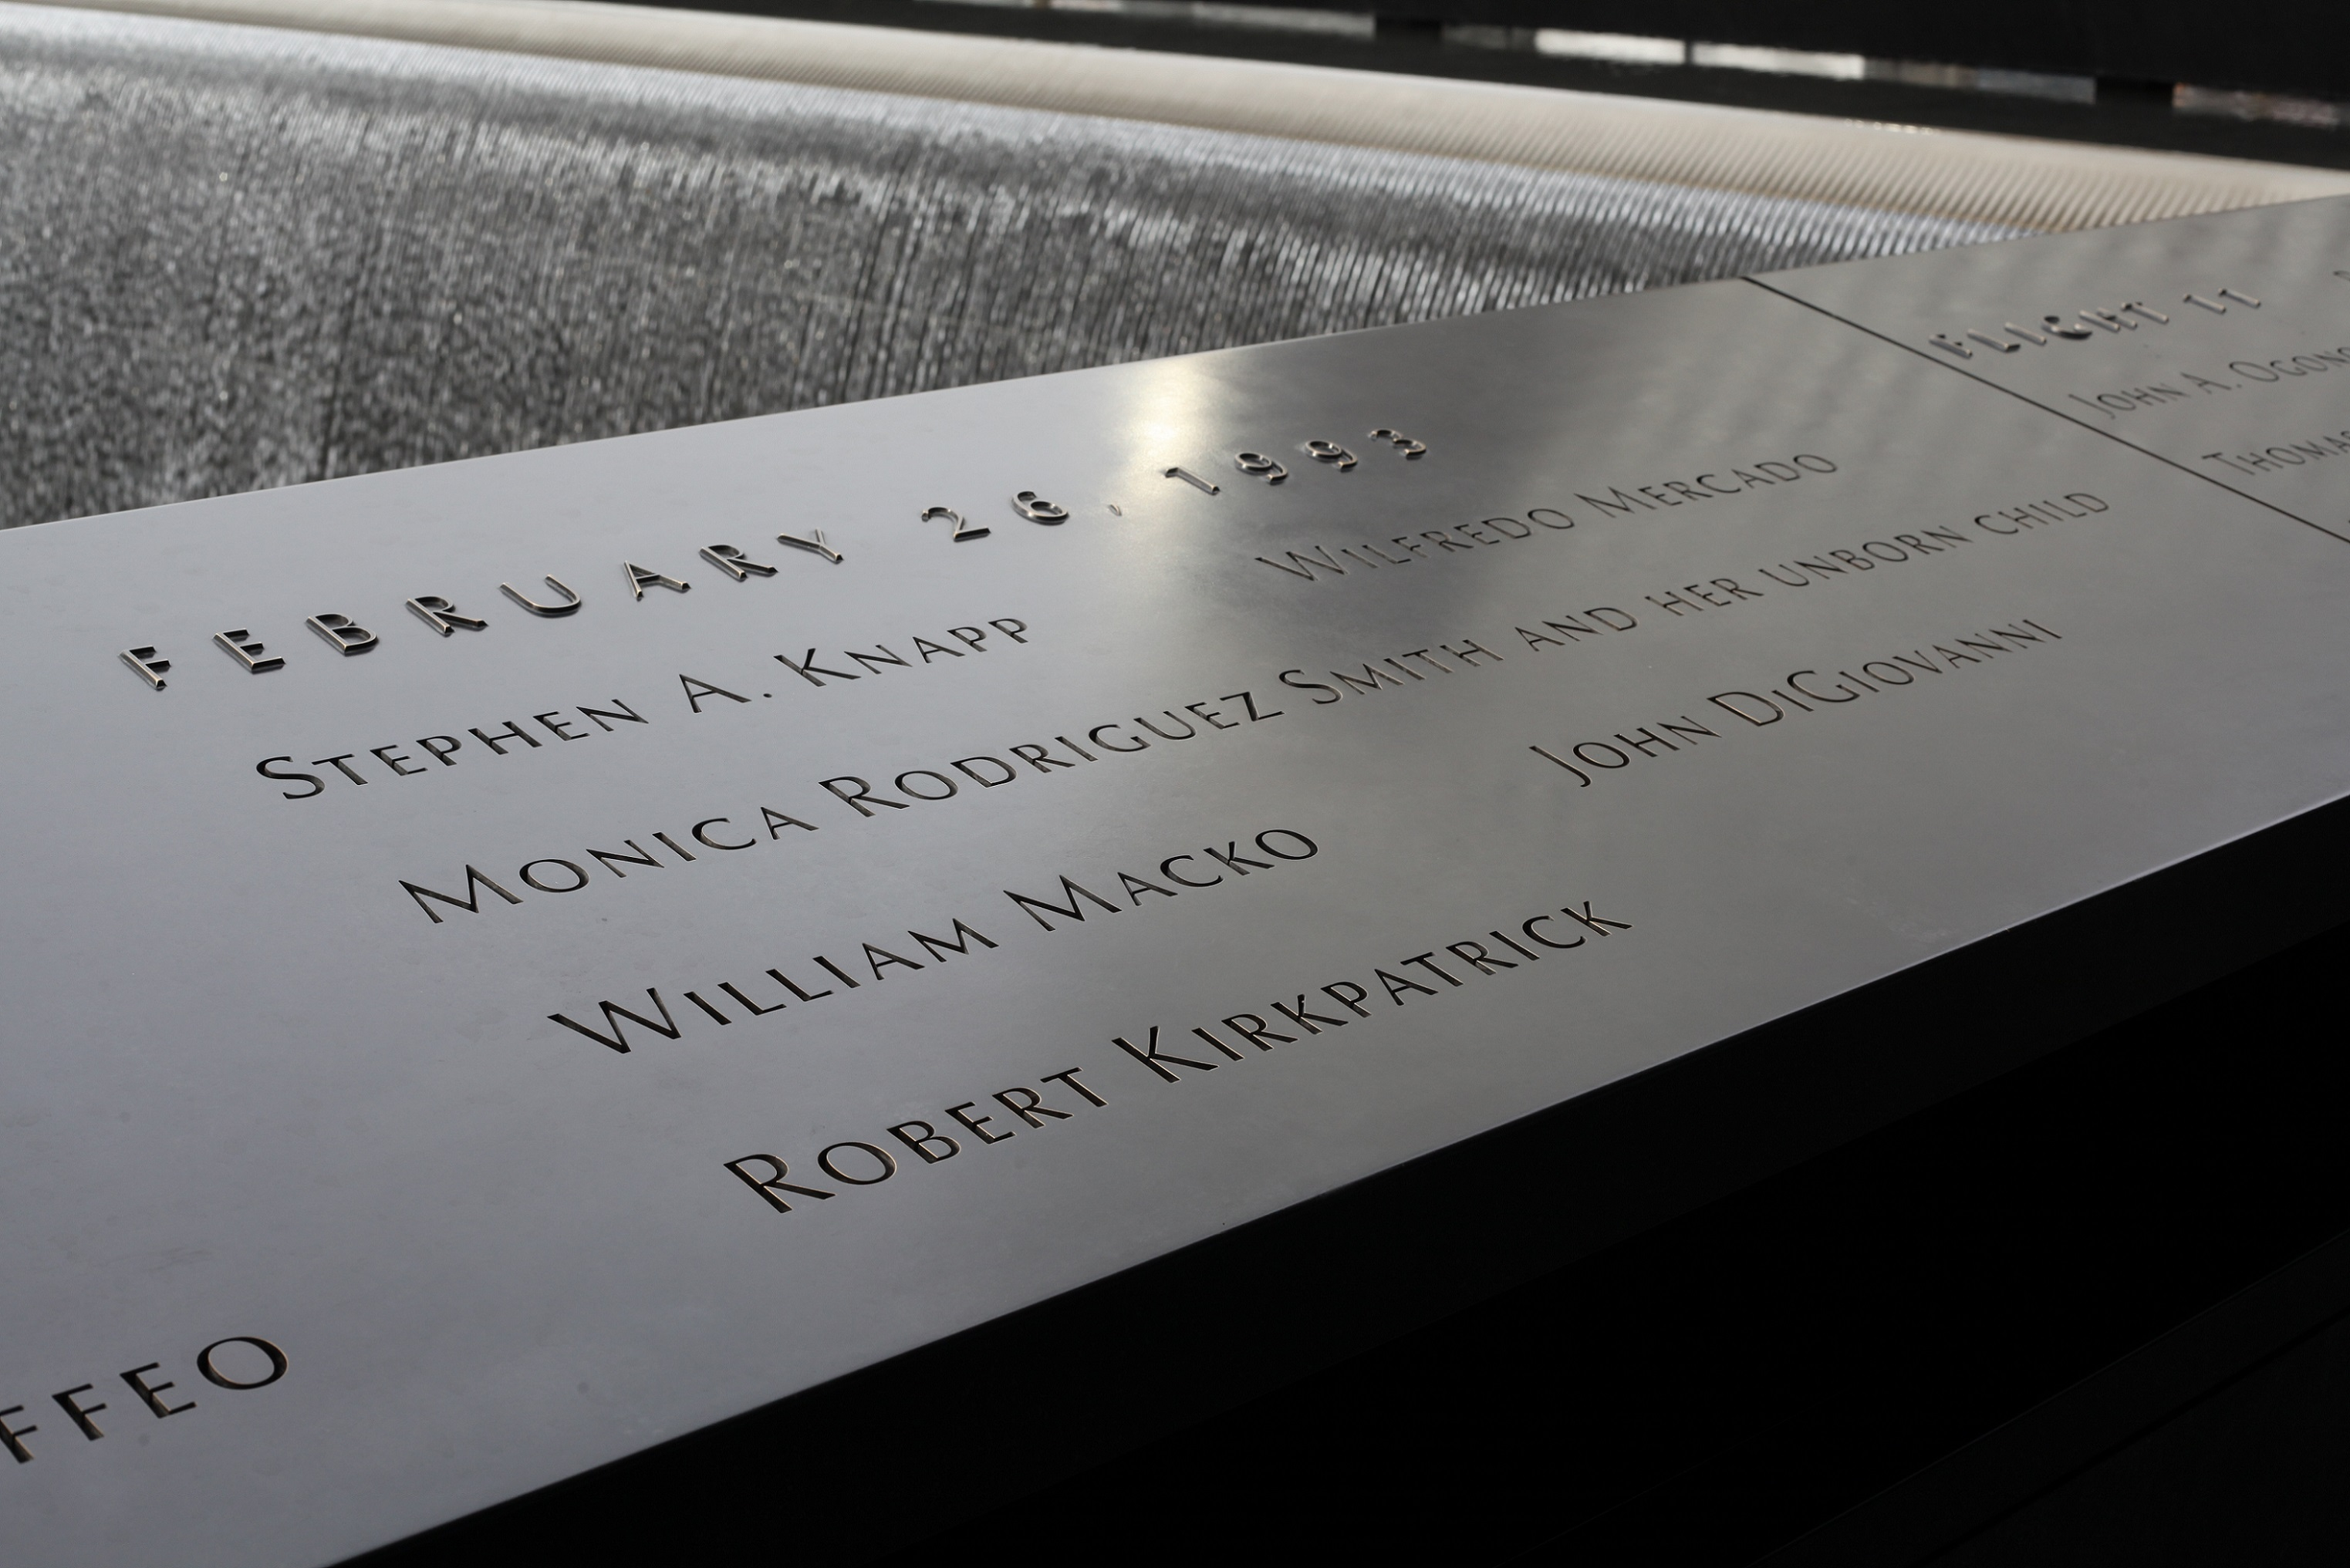 A section of the Memorial's bronze parapets lists the names of the six people killed in the February 26, 1993 attack on the World Trade Center.